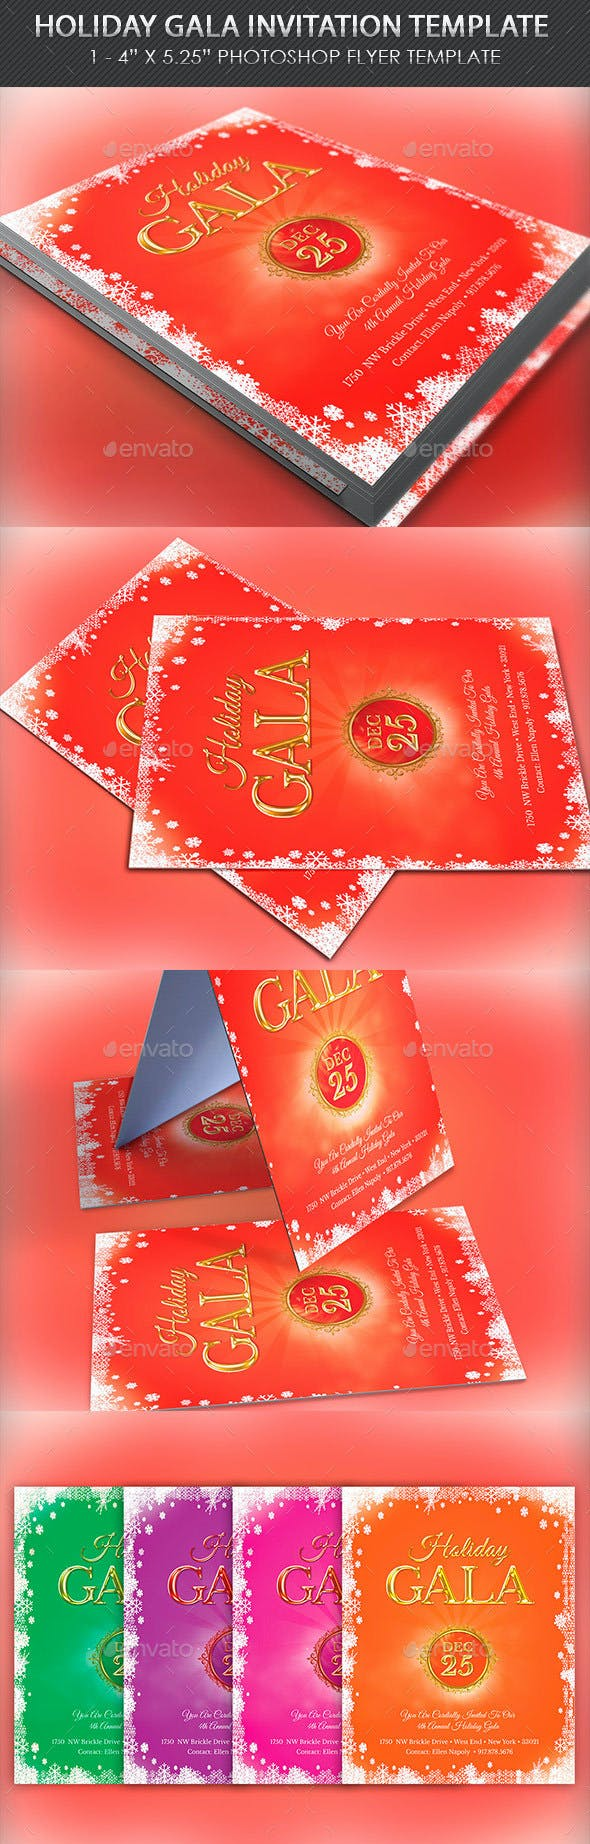 holiday gala invitation template by 4cgraphic2 graphicriver